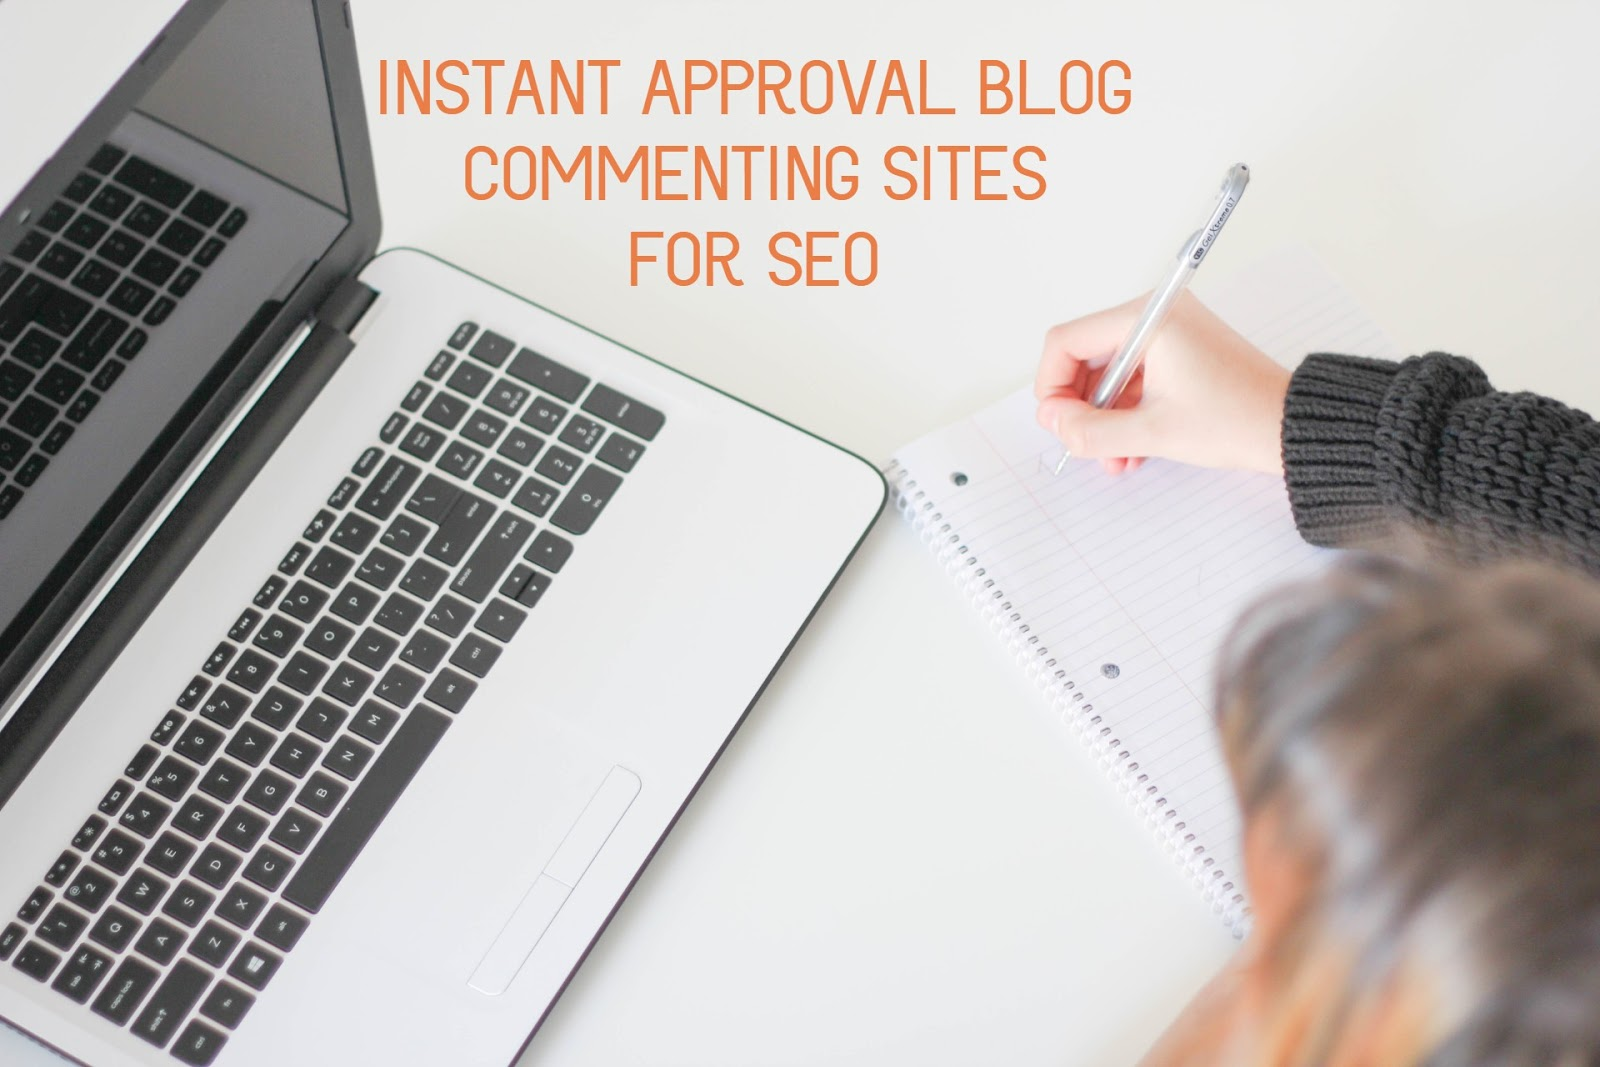 Top 60 Instant Approval Blog Commenting Sites for 2019